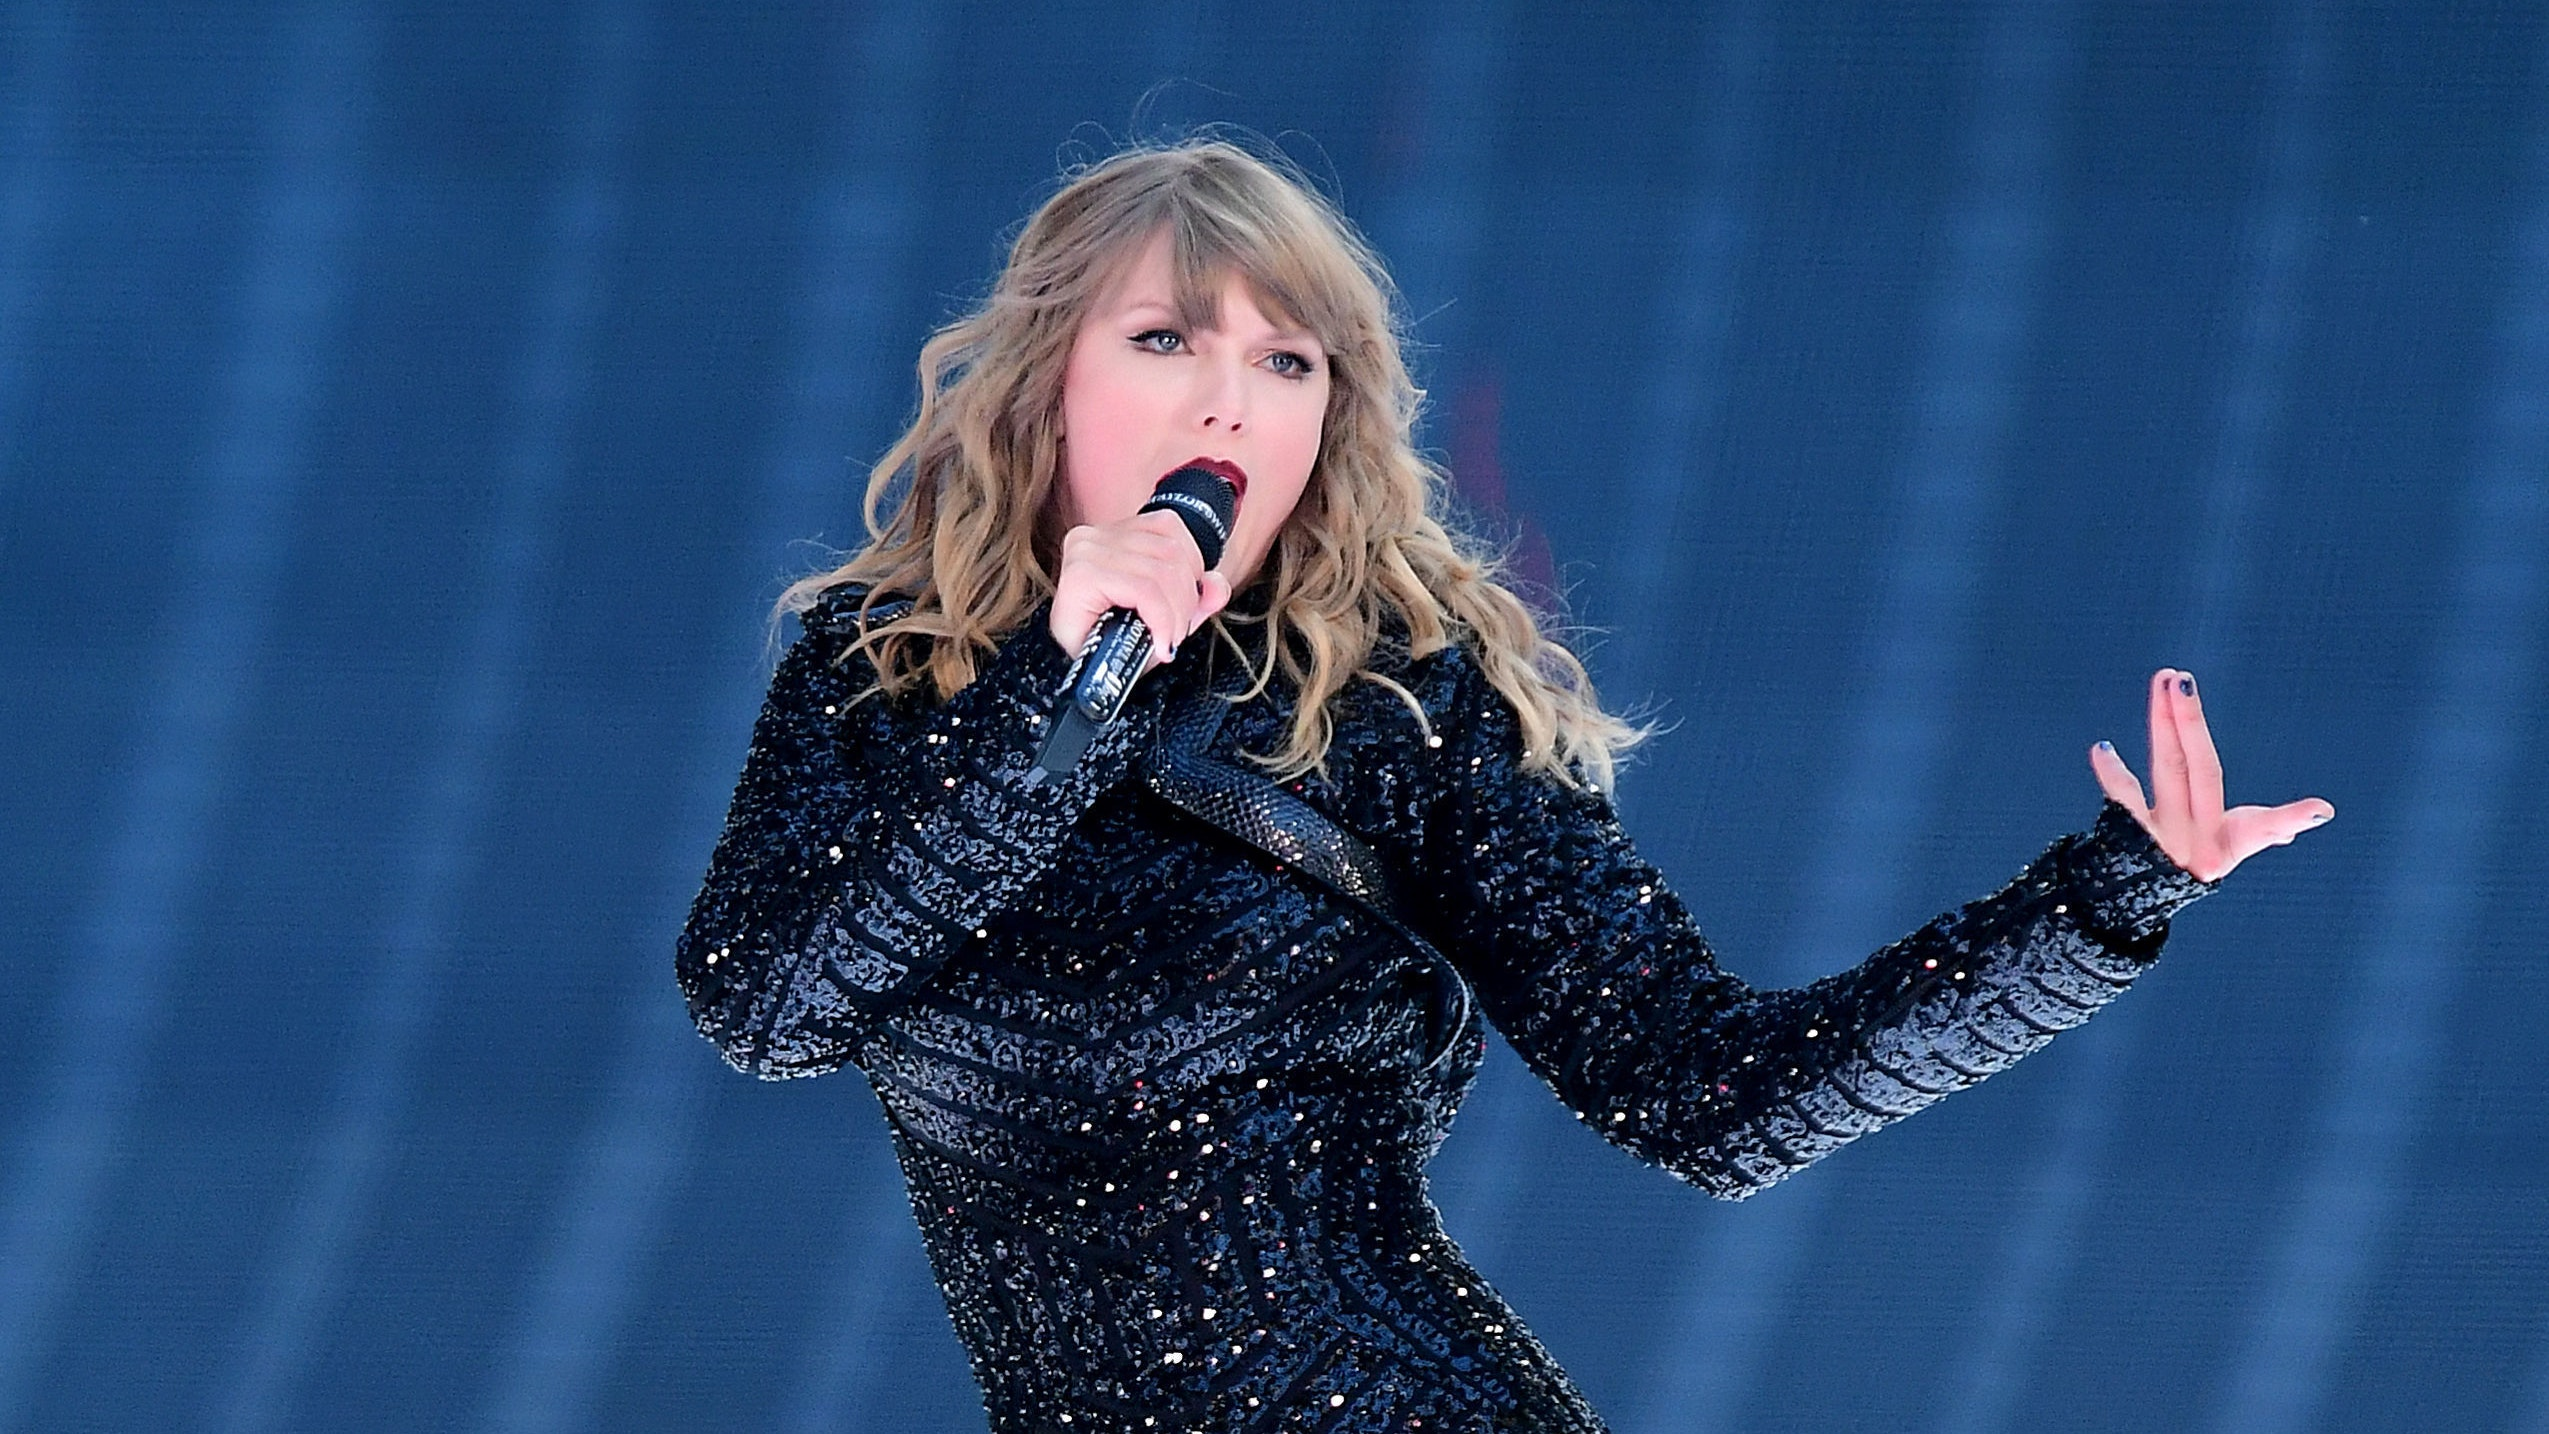 Taylor Swift Experiences Stage Malfunction During Philadelphia Concert